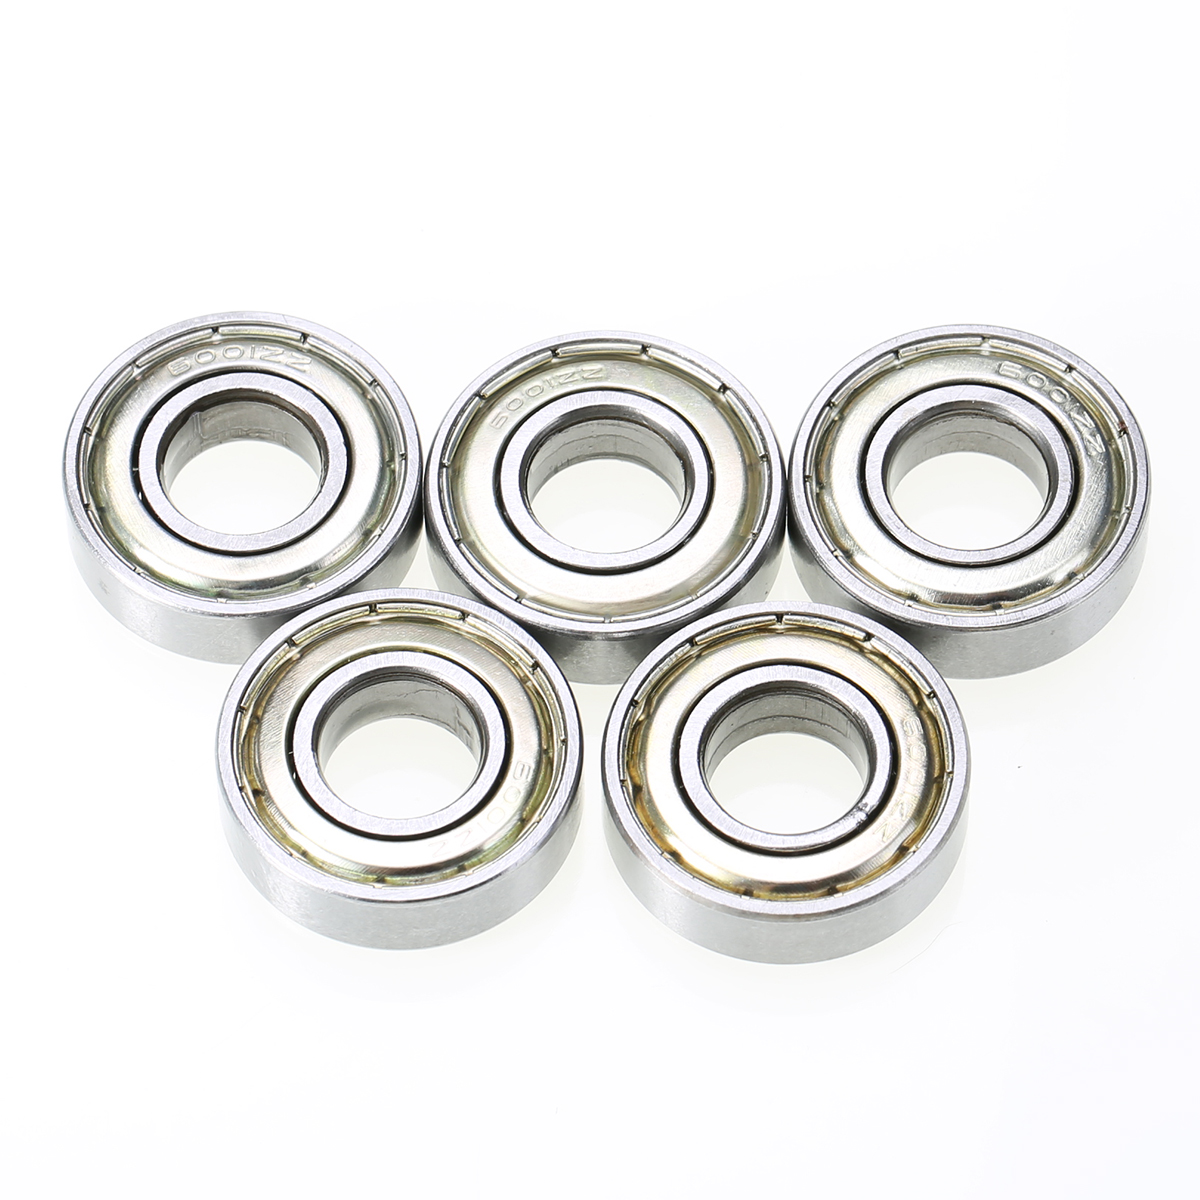 5pcs/lot Small Wear 6001ZZ Ball Bearing Mayitr Shielded Deep Groove Radial Bearings 12mm * 28mm * 8mm for Electric Motors Wheel 5pcs lot f6002zz f6002 zz 15x32x9mm metal shielded flange deep groove ball bearing